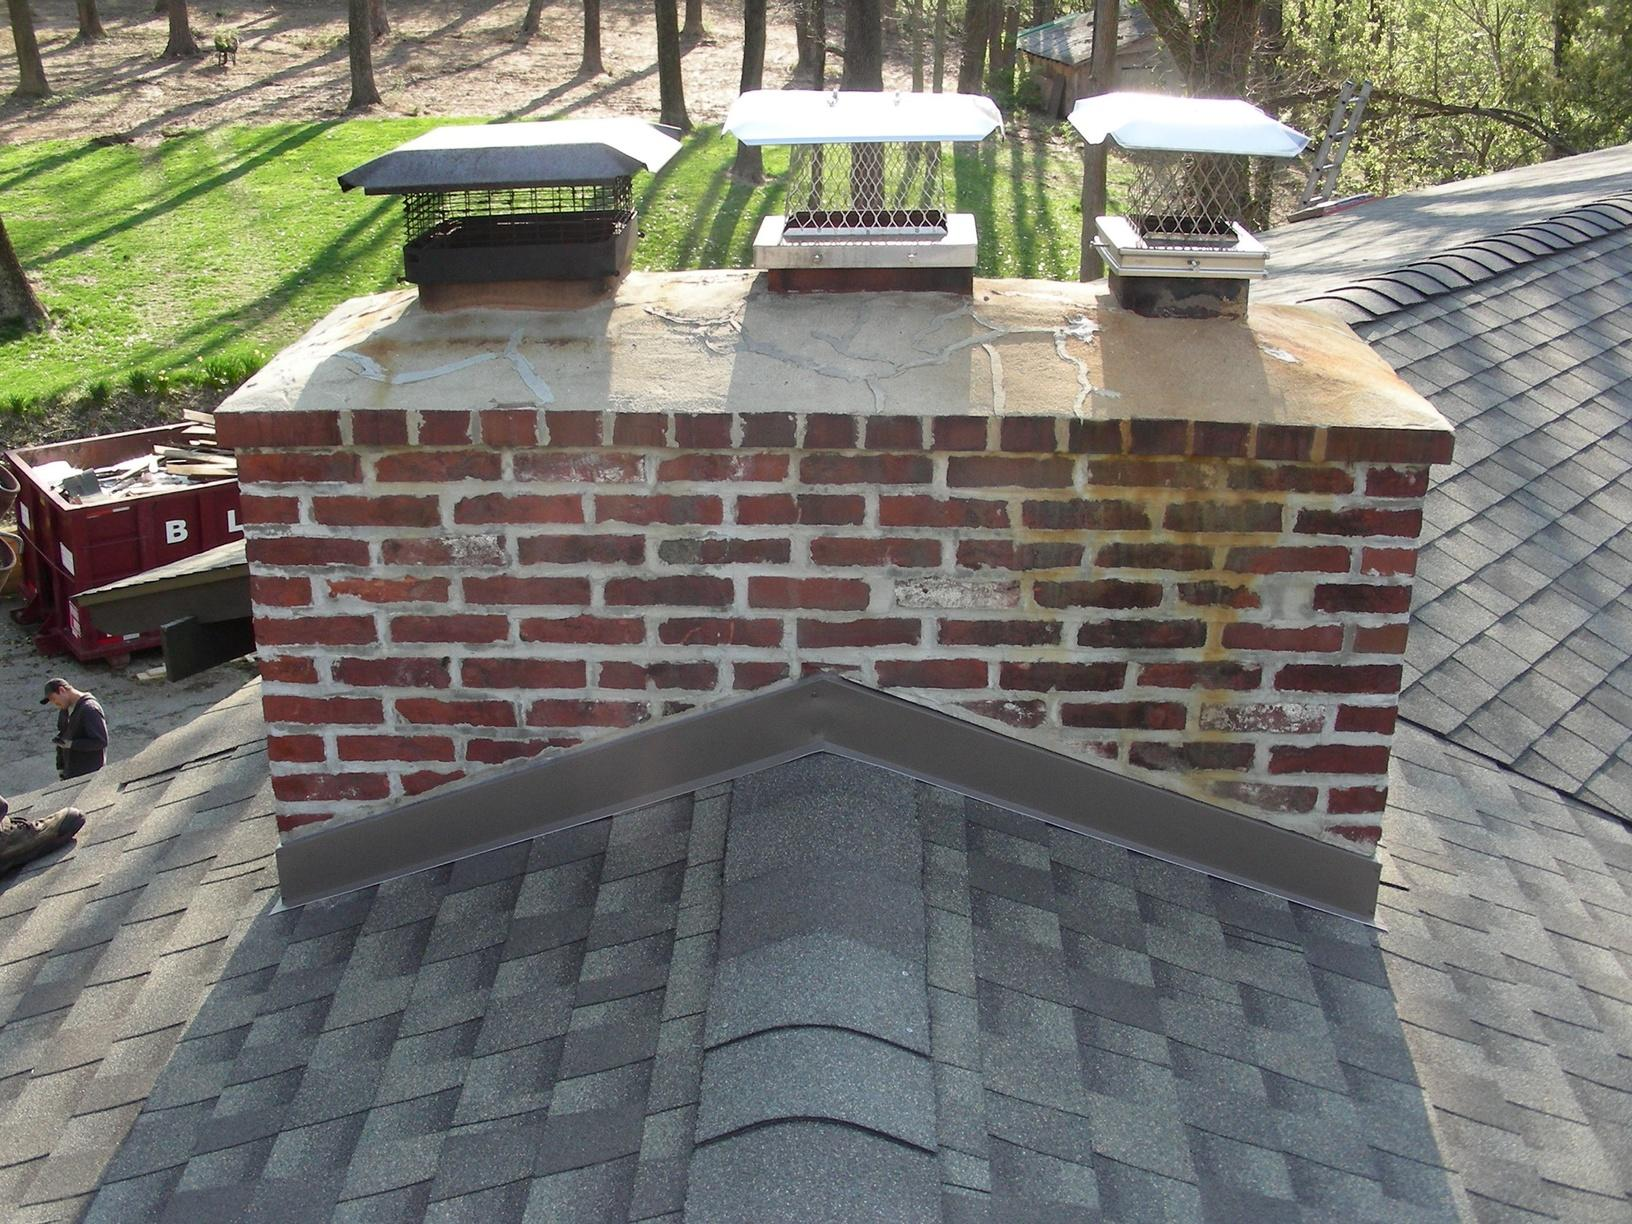 Asphalt Roof Replacement in Allentown, PA